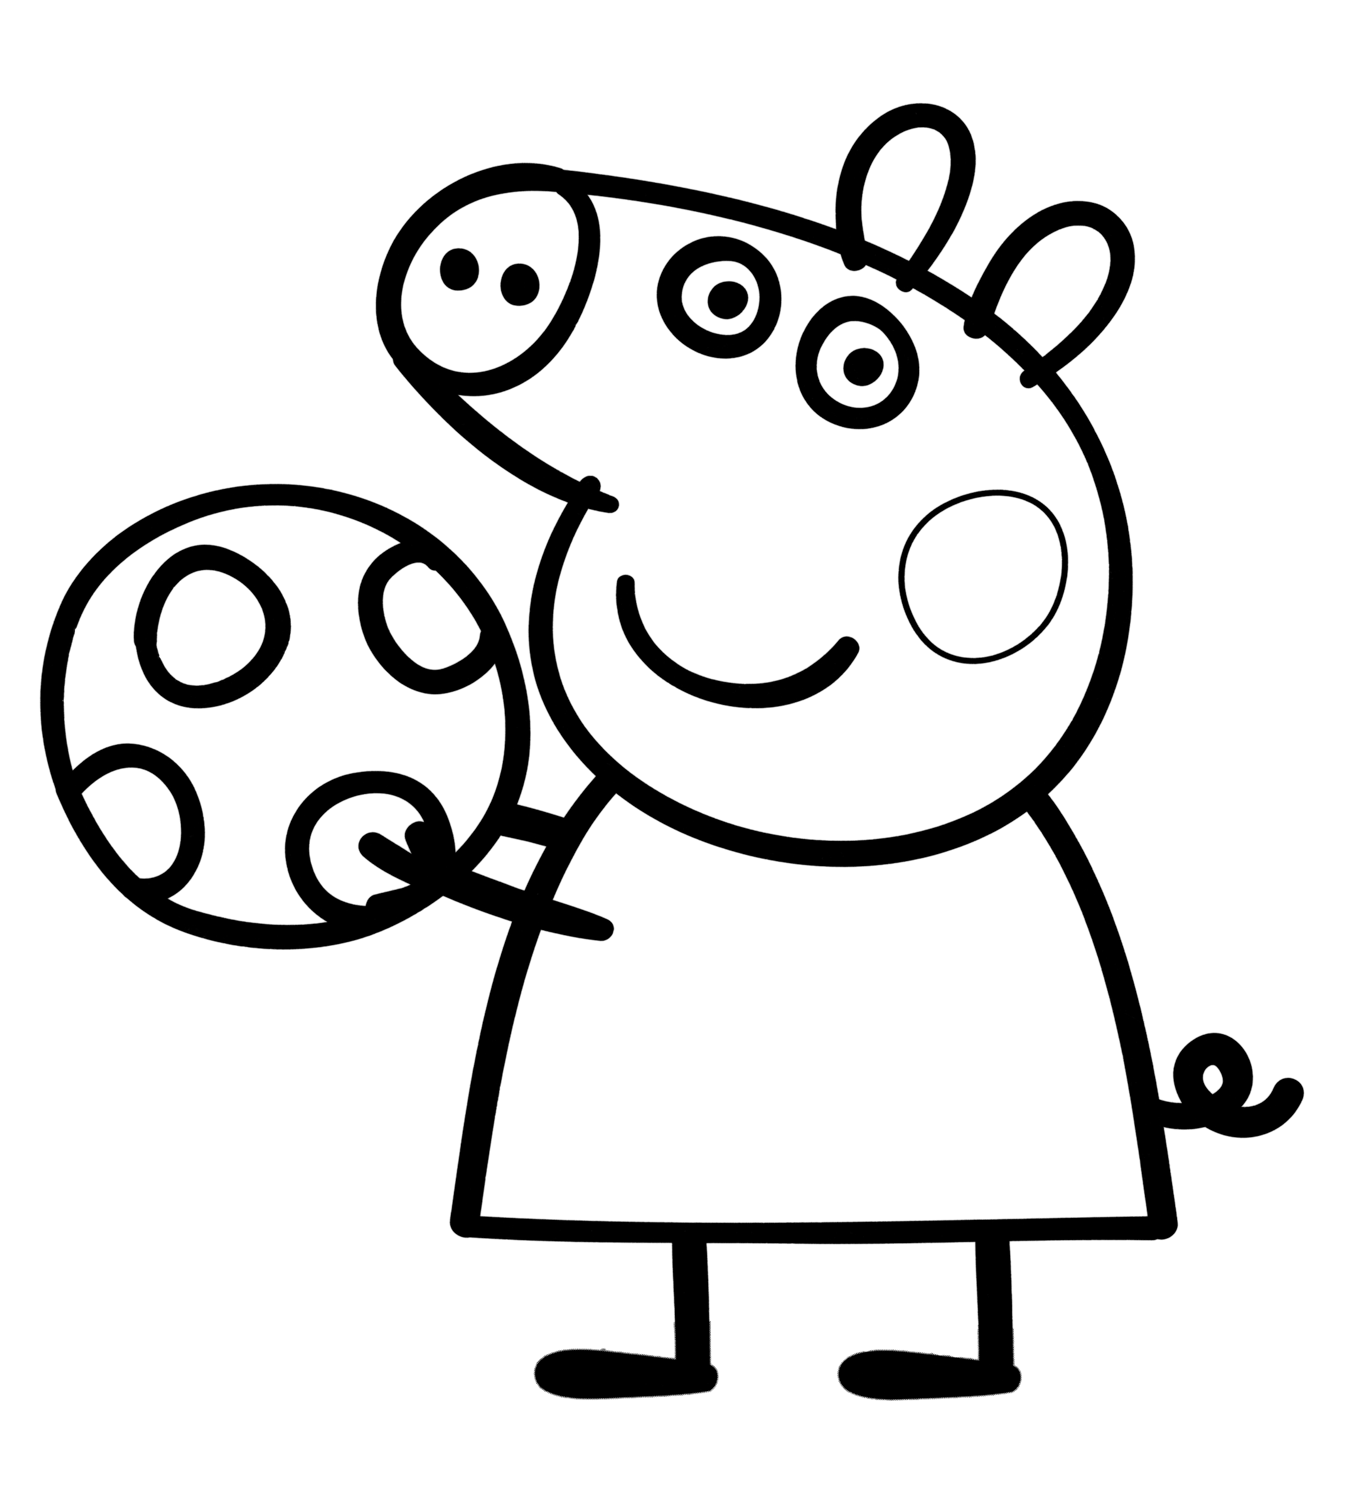 Peppa Pig Peppa Pig Plays With The Ball The Pig Coloring Pages